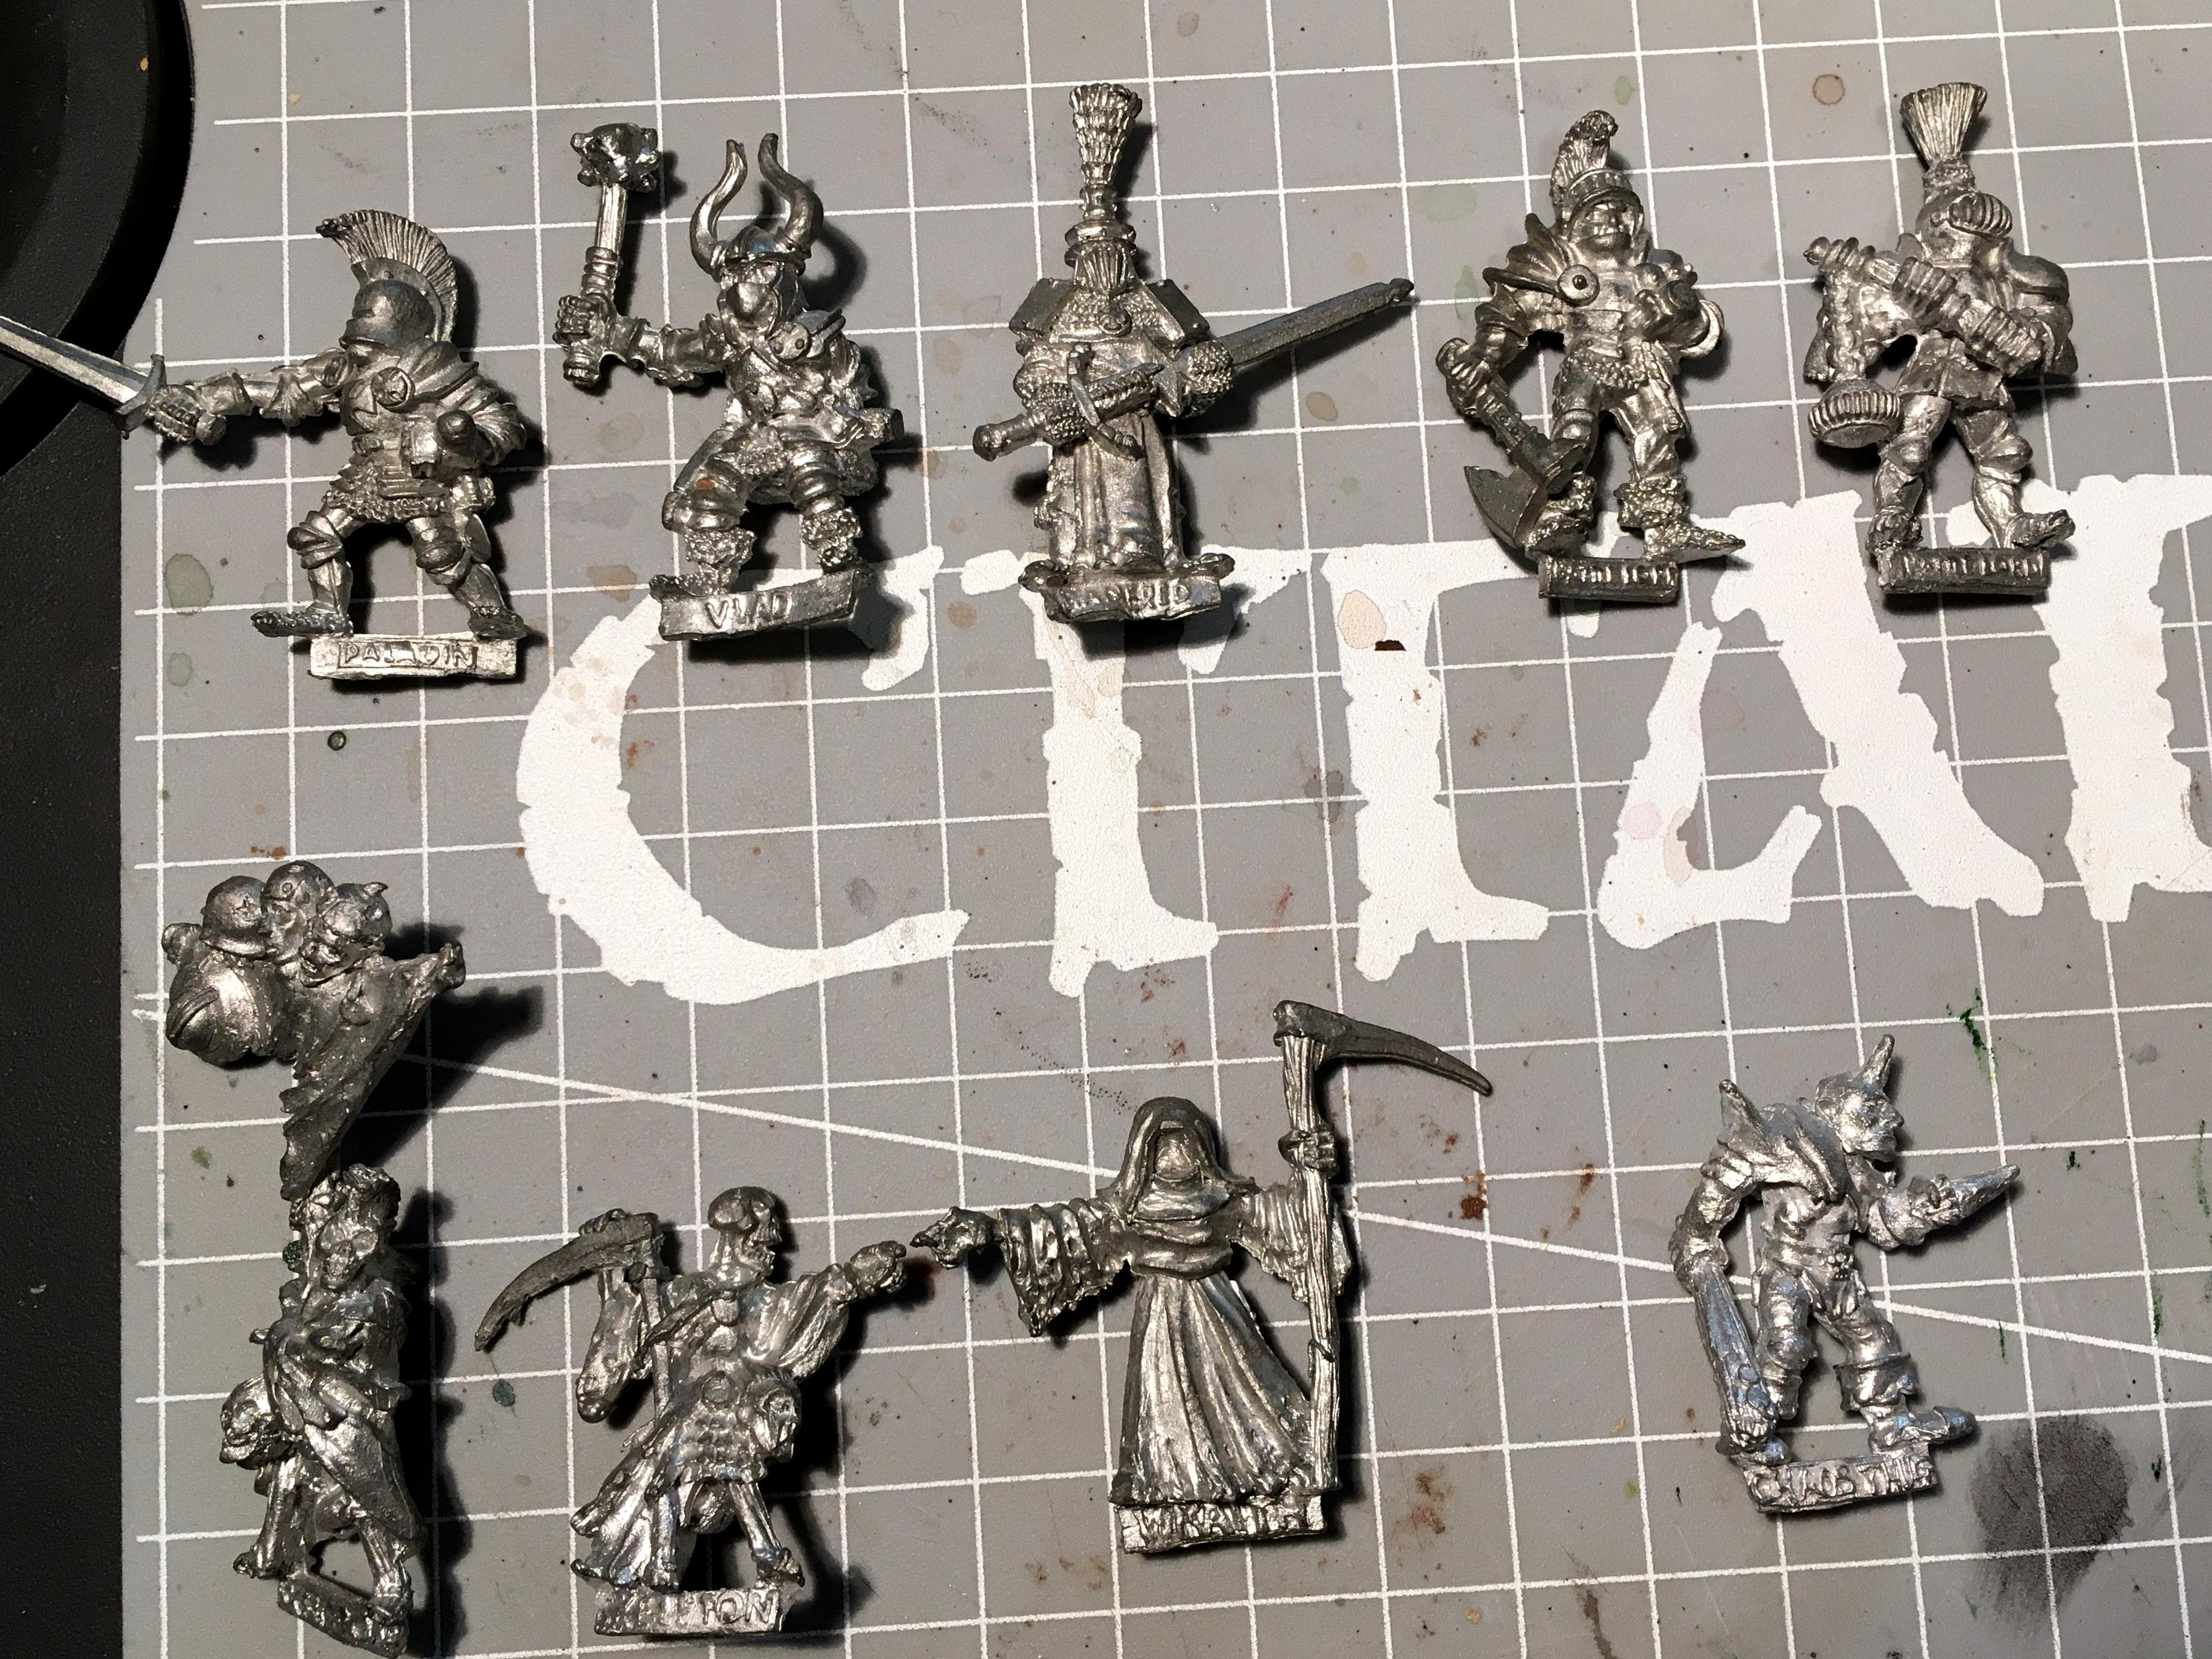 1985, Battle Lord, Chaos Thug, Manfred, Paladin, Skeletons, Vlad, Wraith